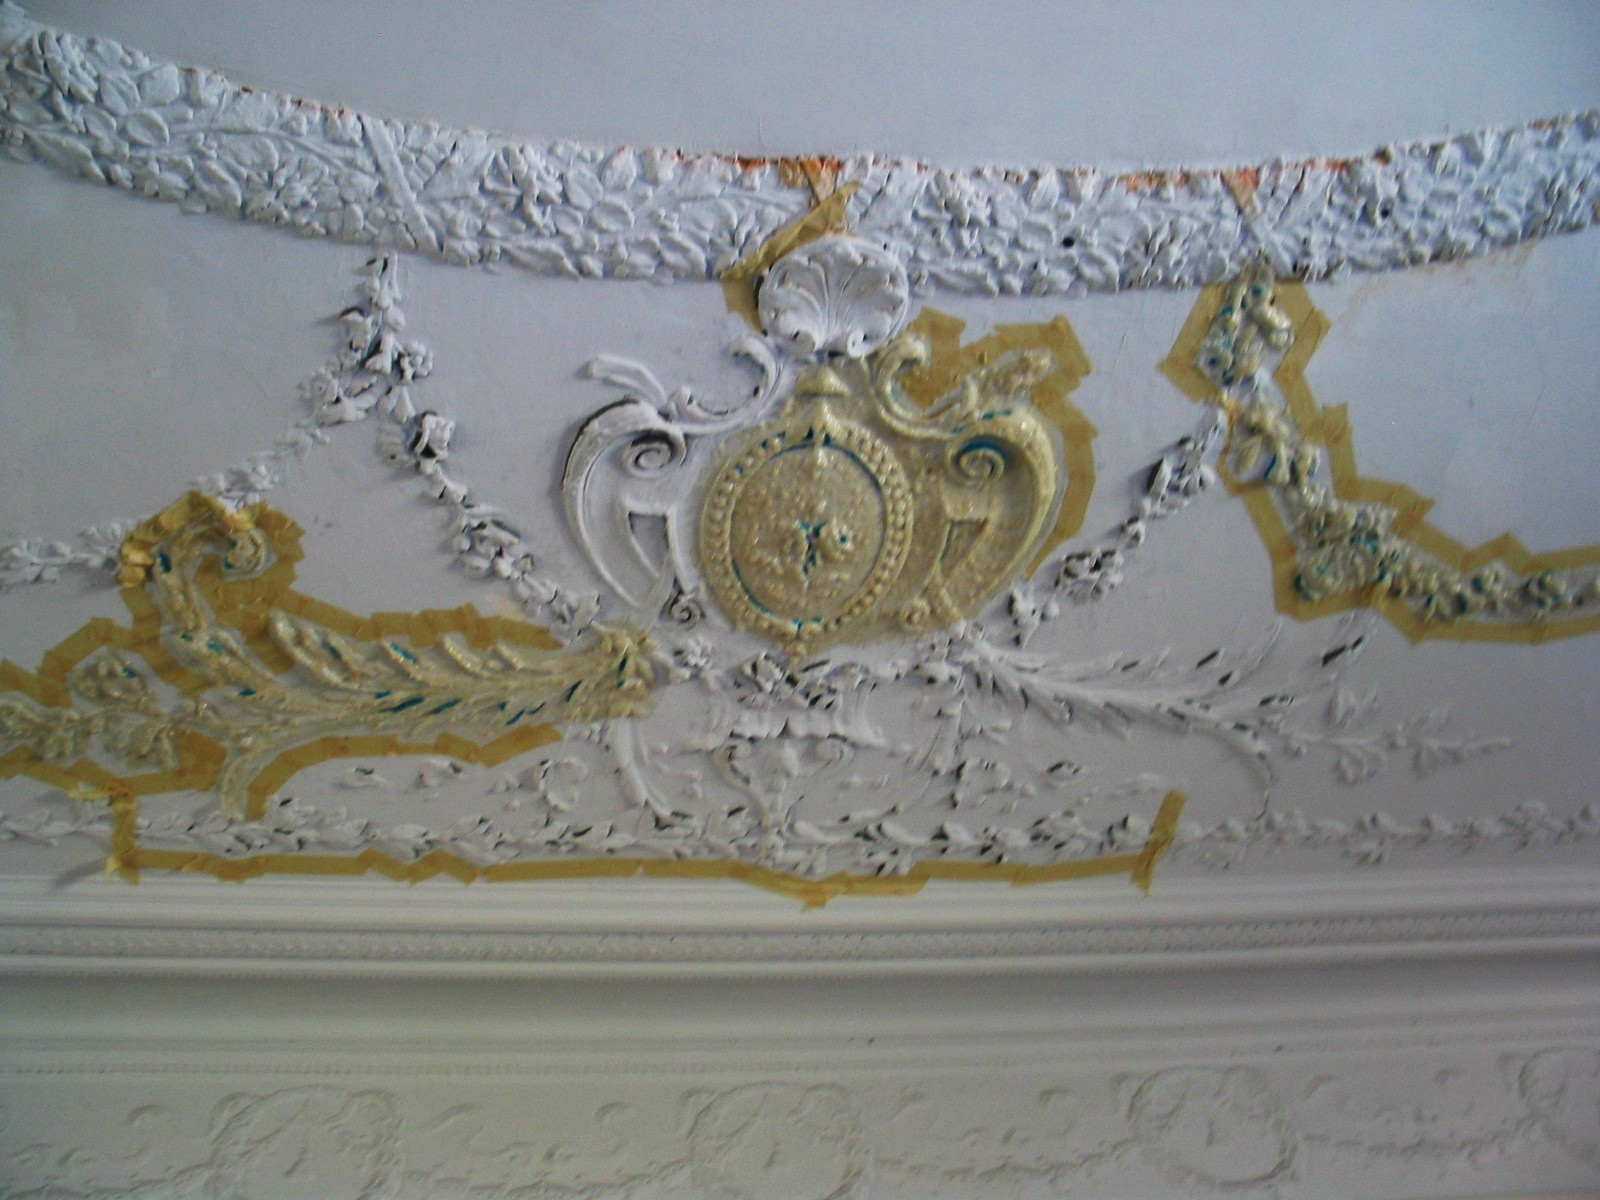 The restored ceiling is painted.